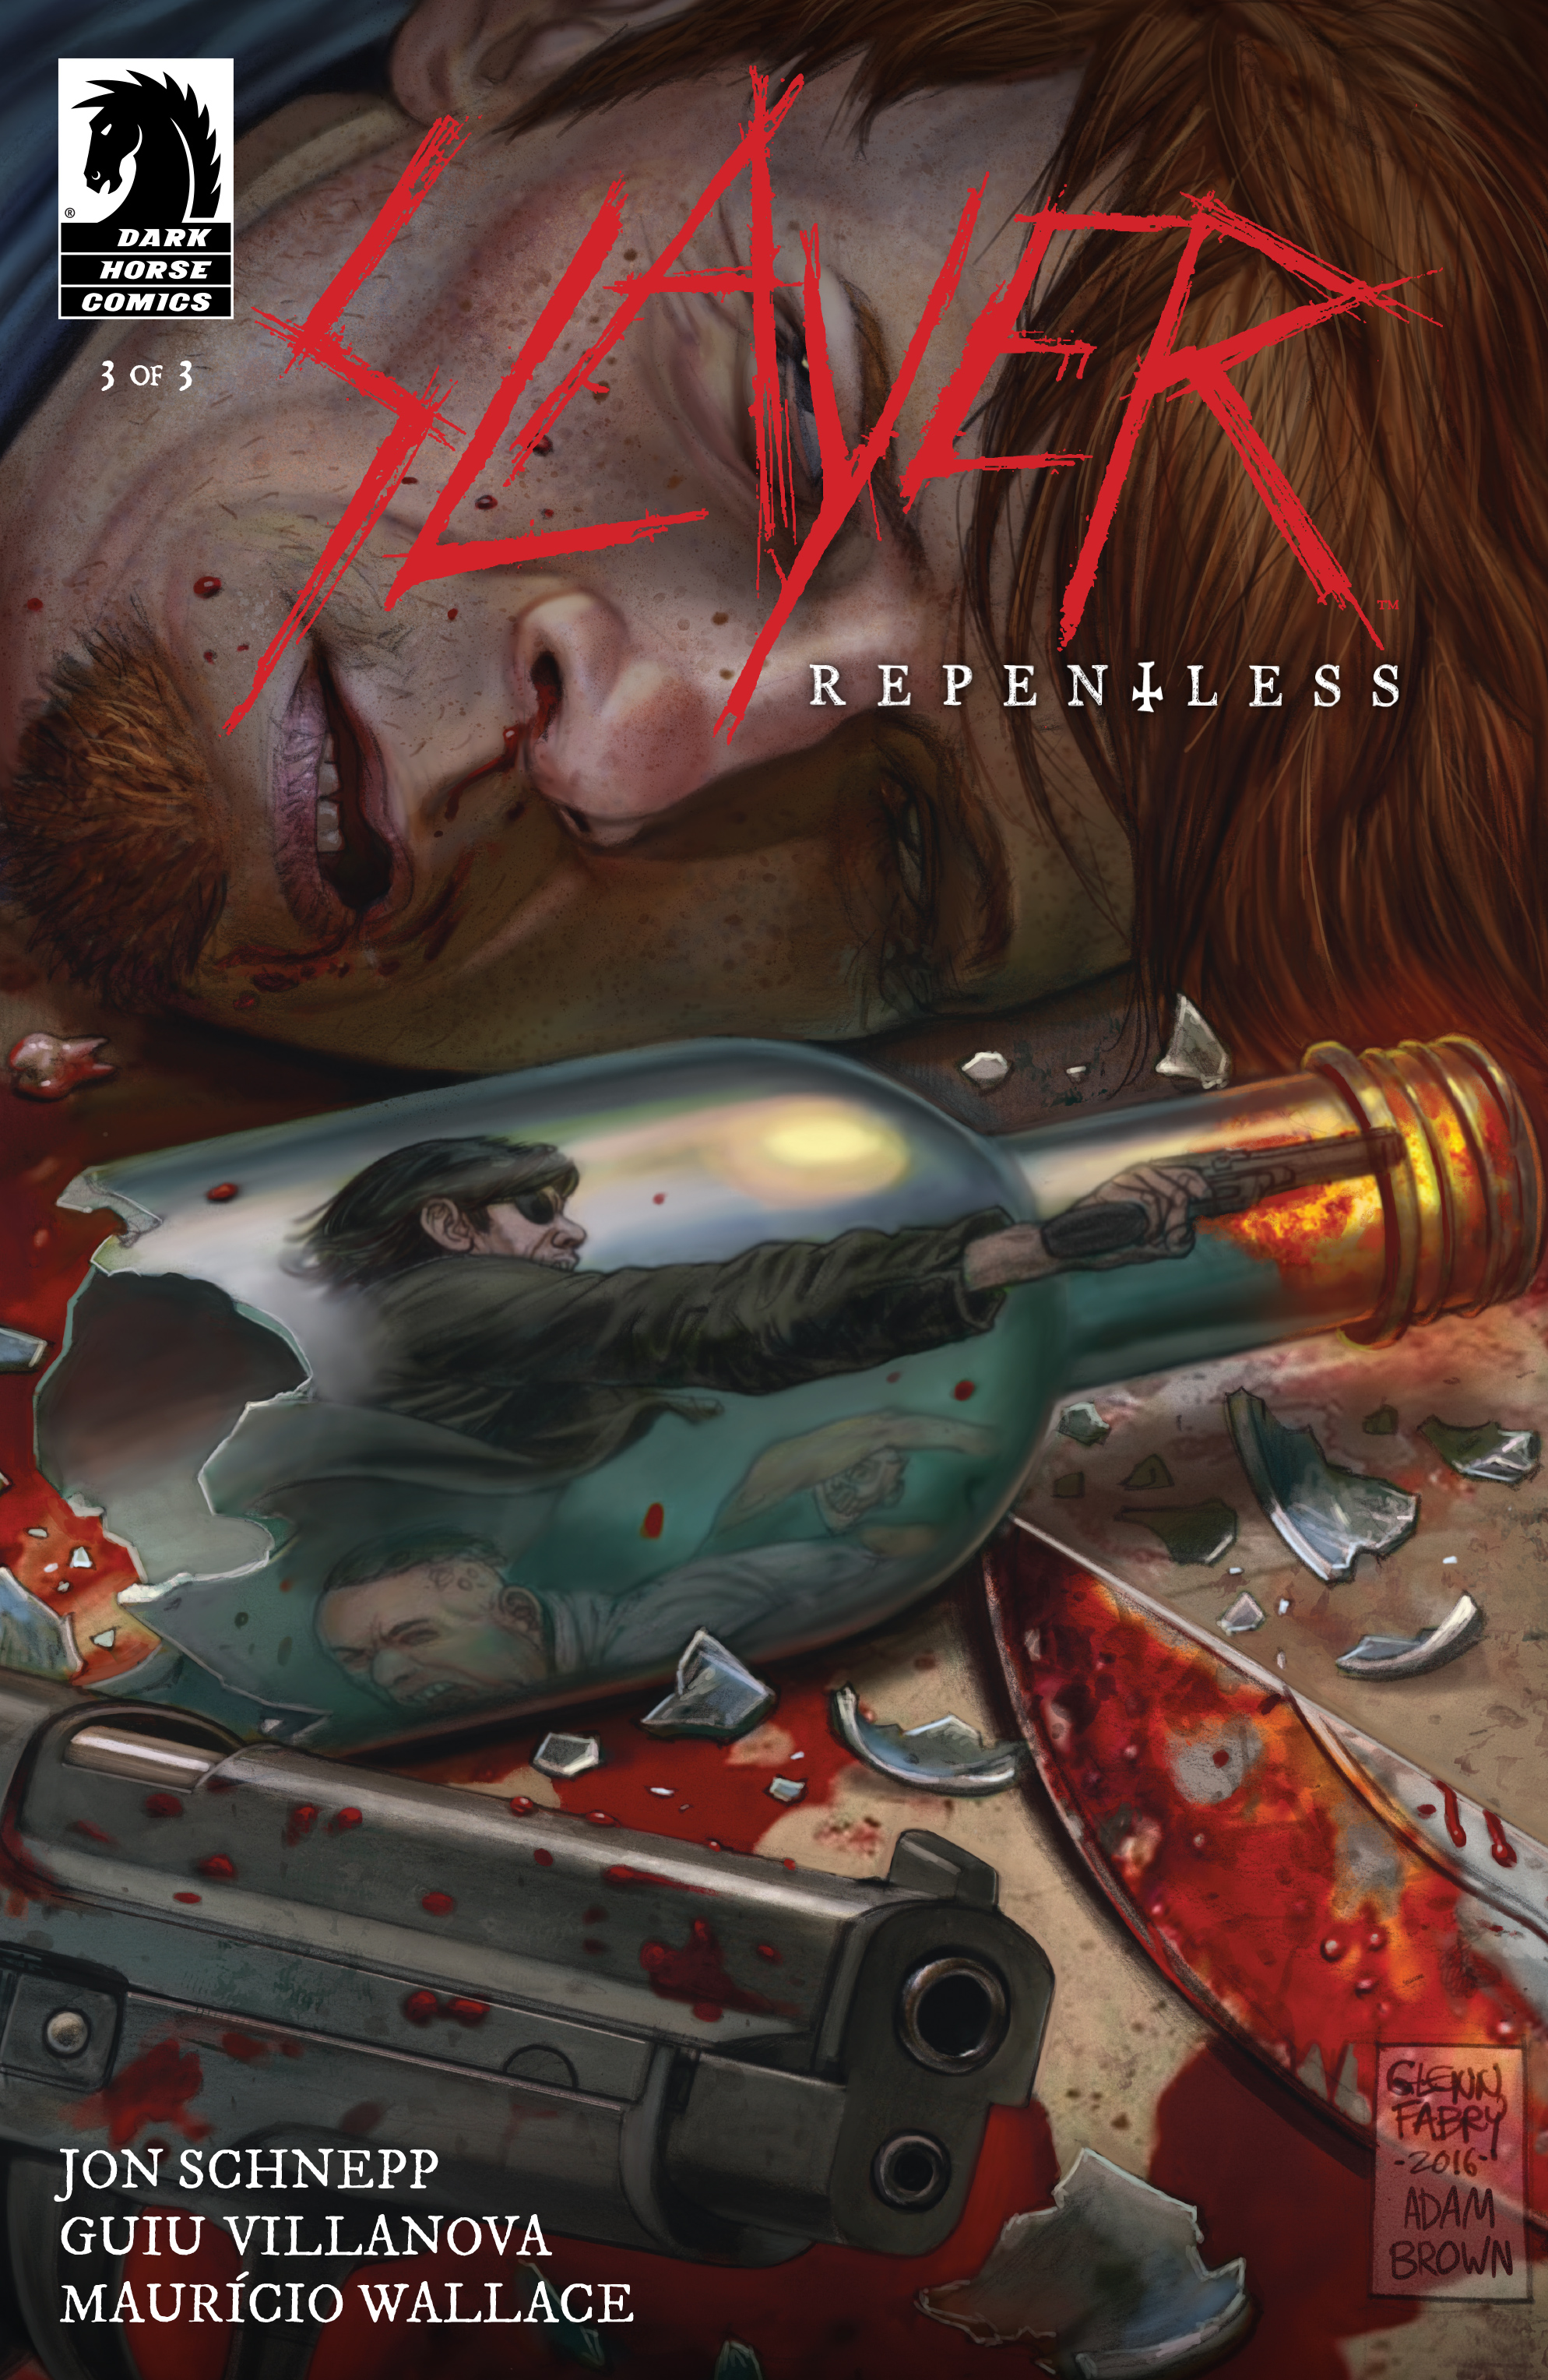 Read online Slayer: Repentless comic -  Issue #3 - 1